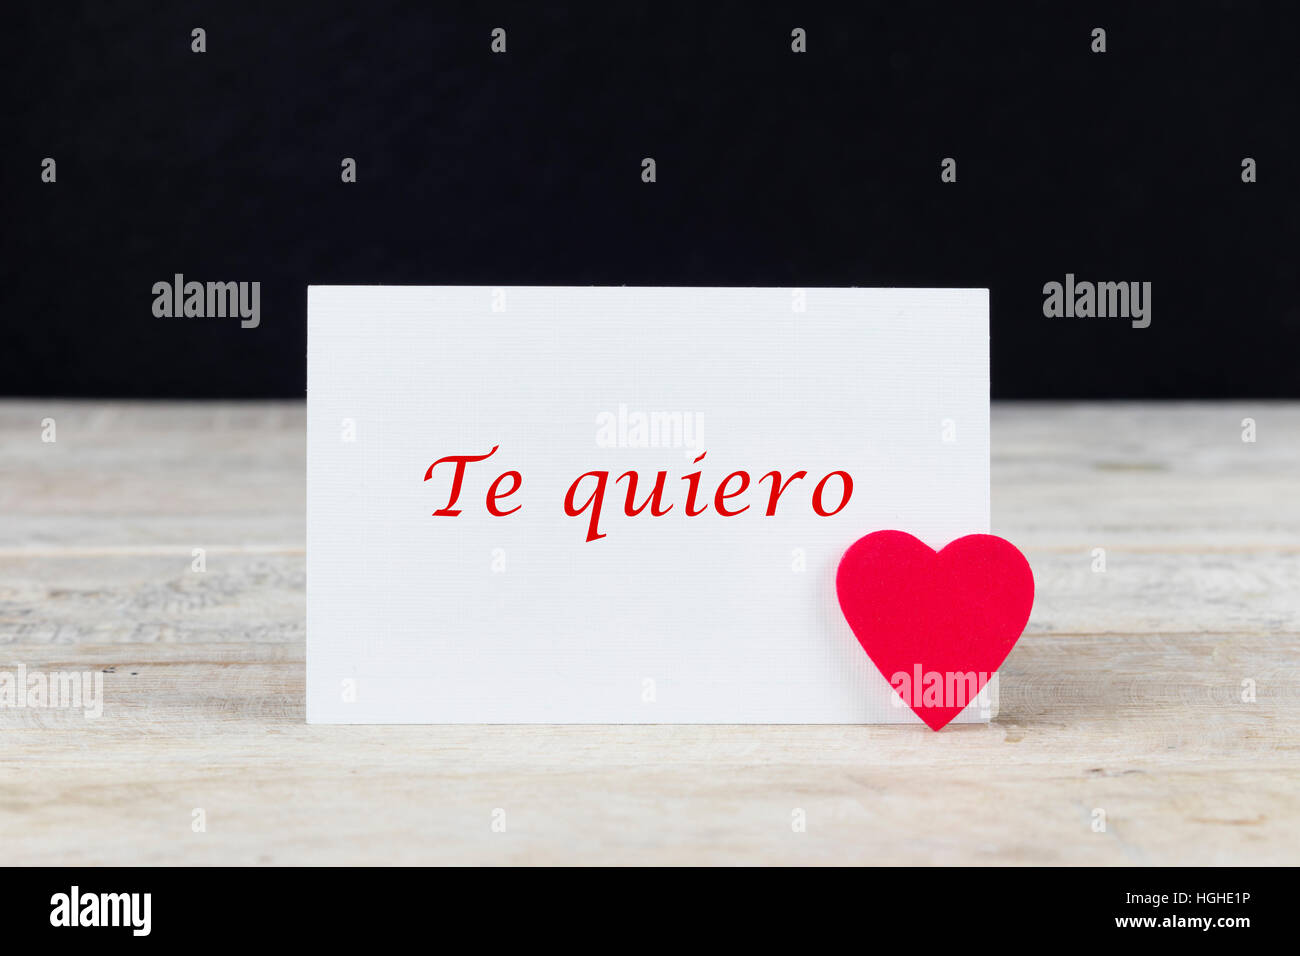 Greeting In Spanish Stock Photos Greeting In Spanish Stock Images